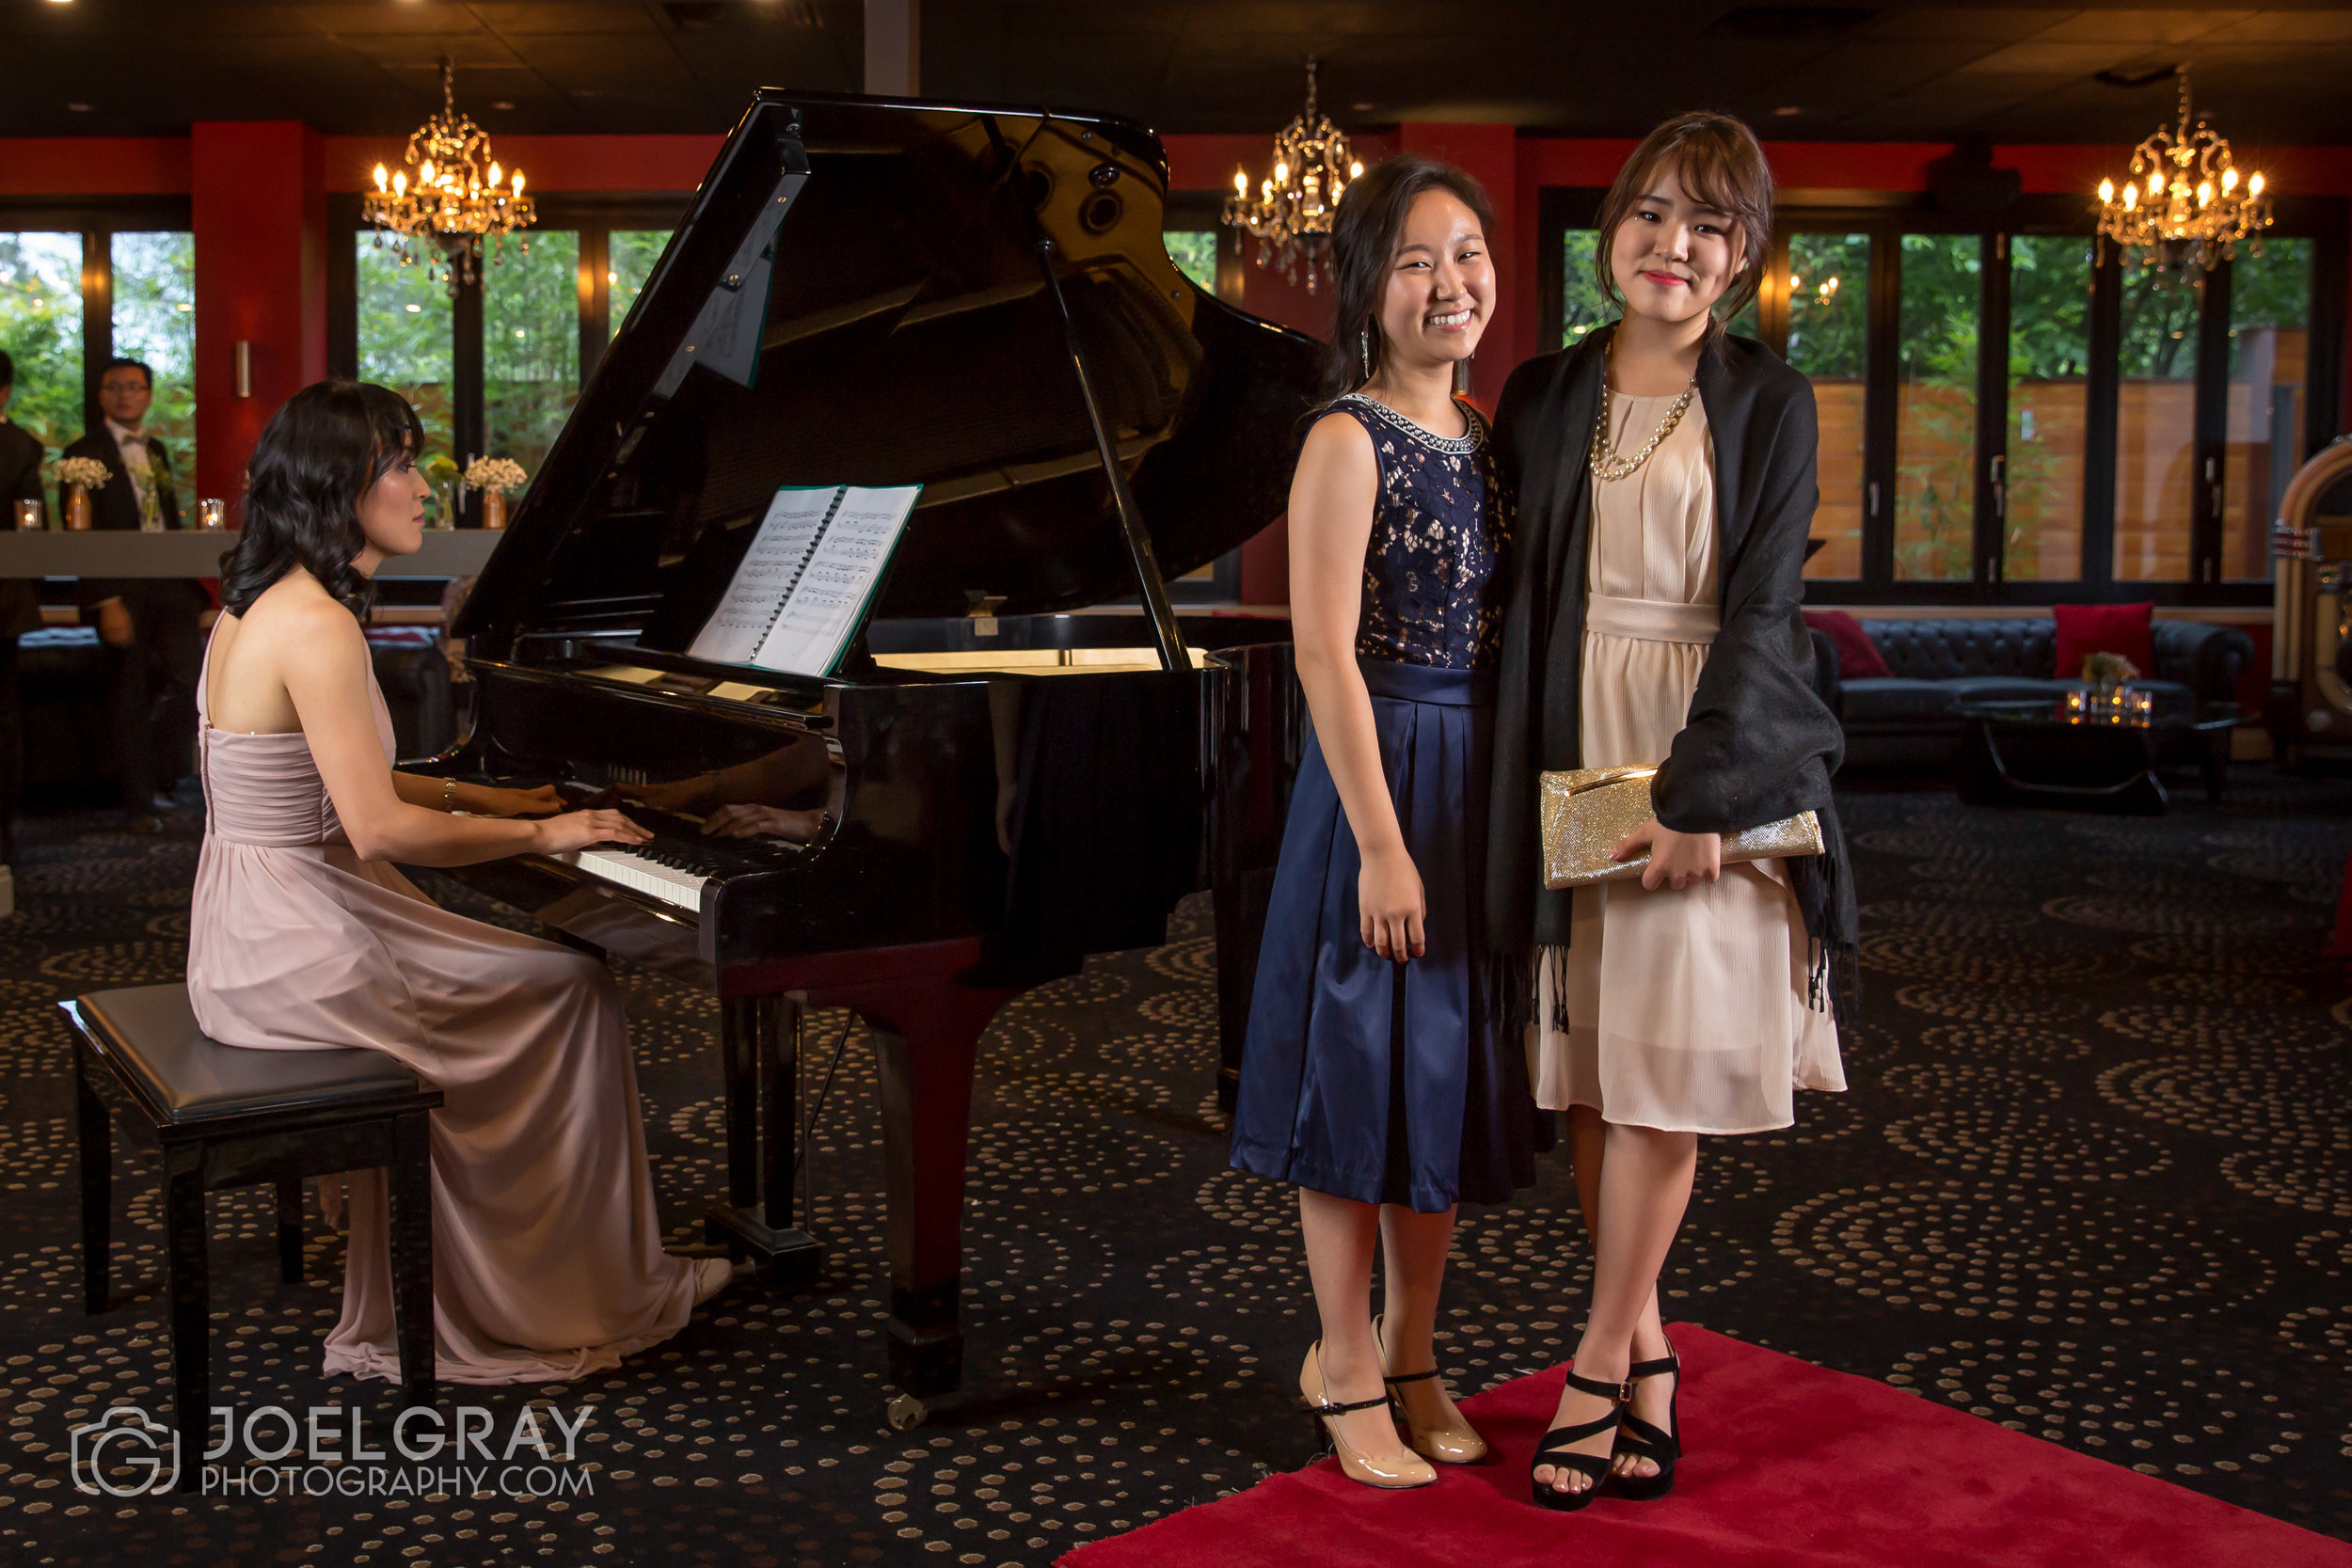 photographer-for-events-in-sydney-1800829994